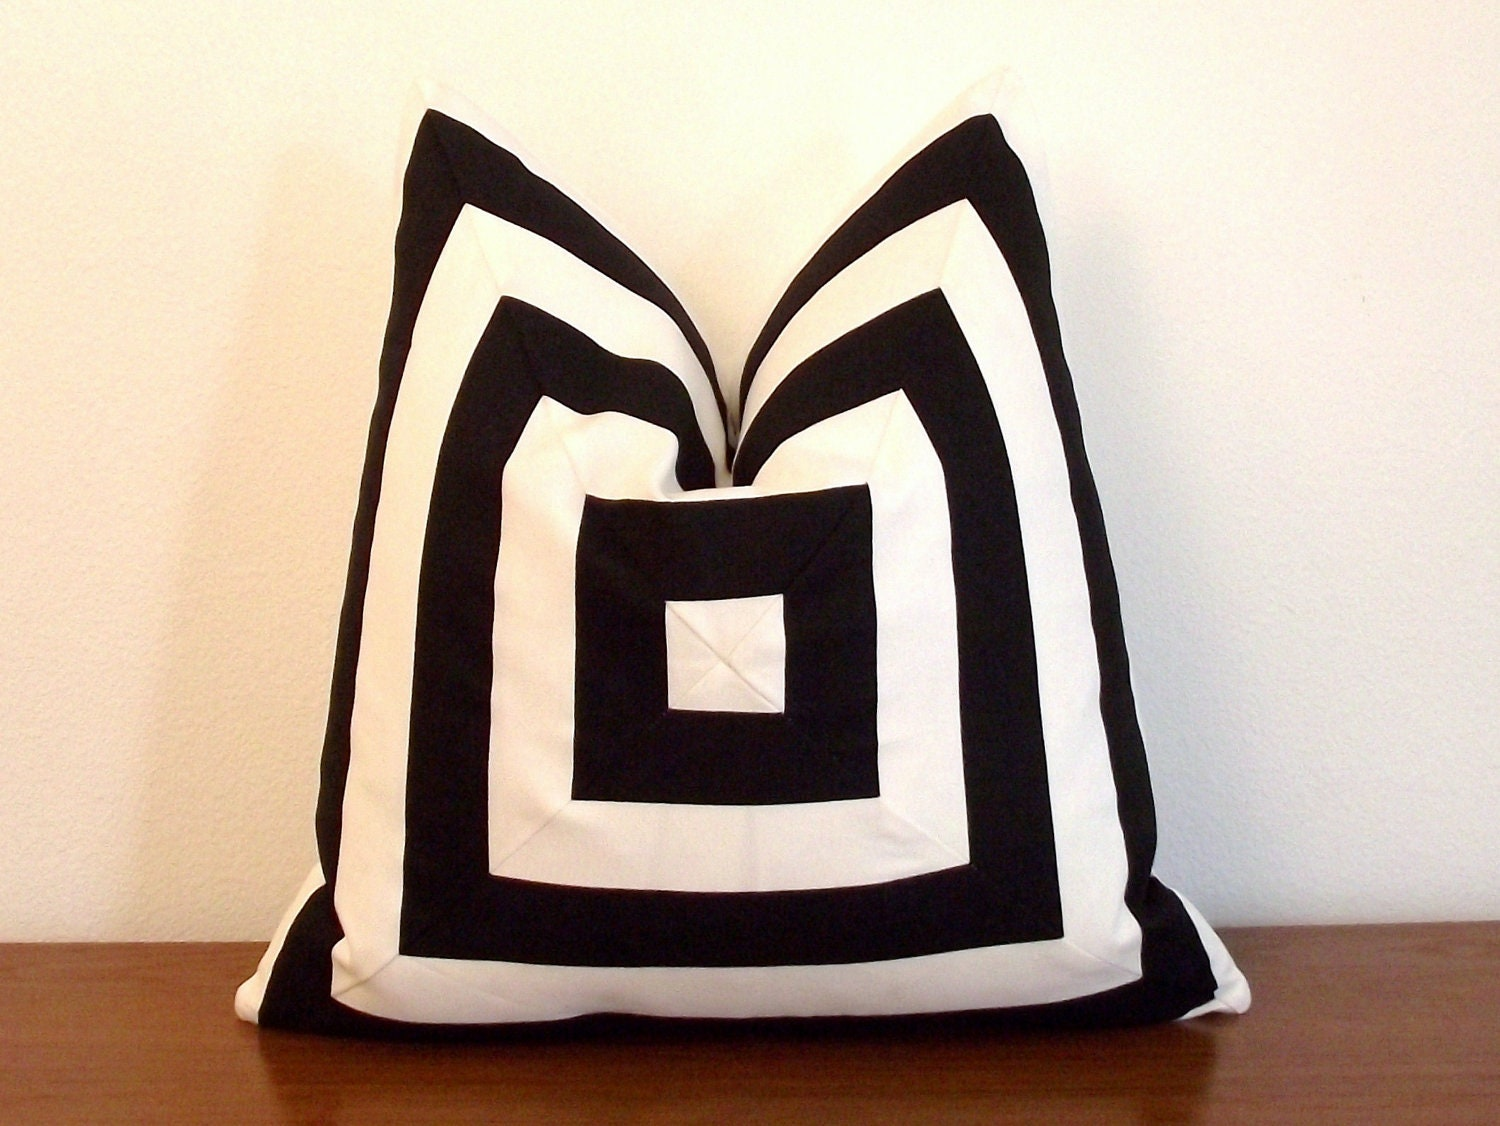 decorative pillow cover black and white stripes geometric. Black Bedroom Furniture Sets. Home Design Ideas